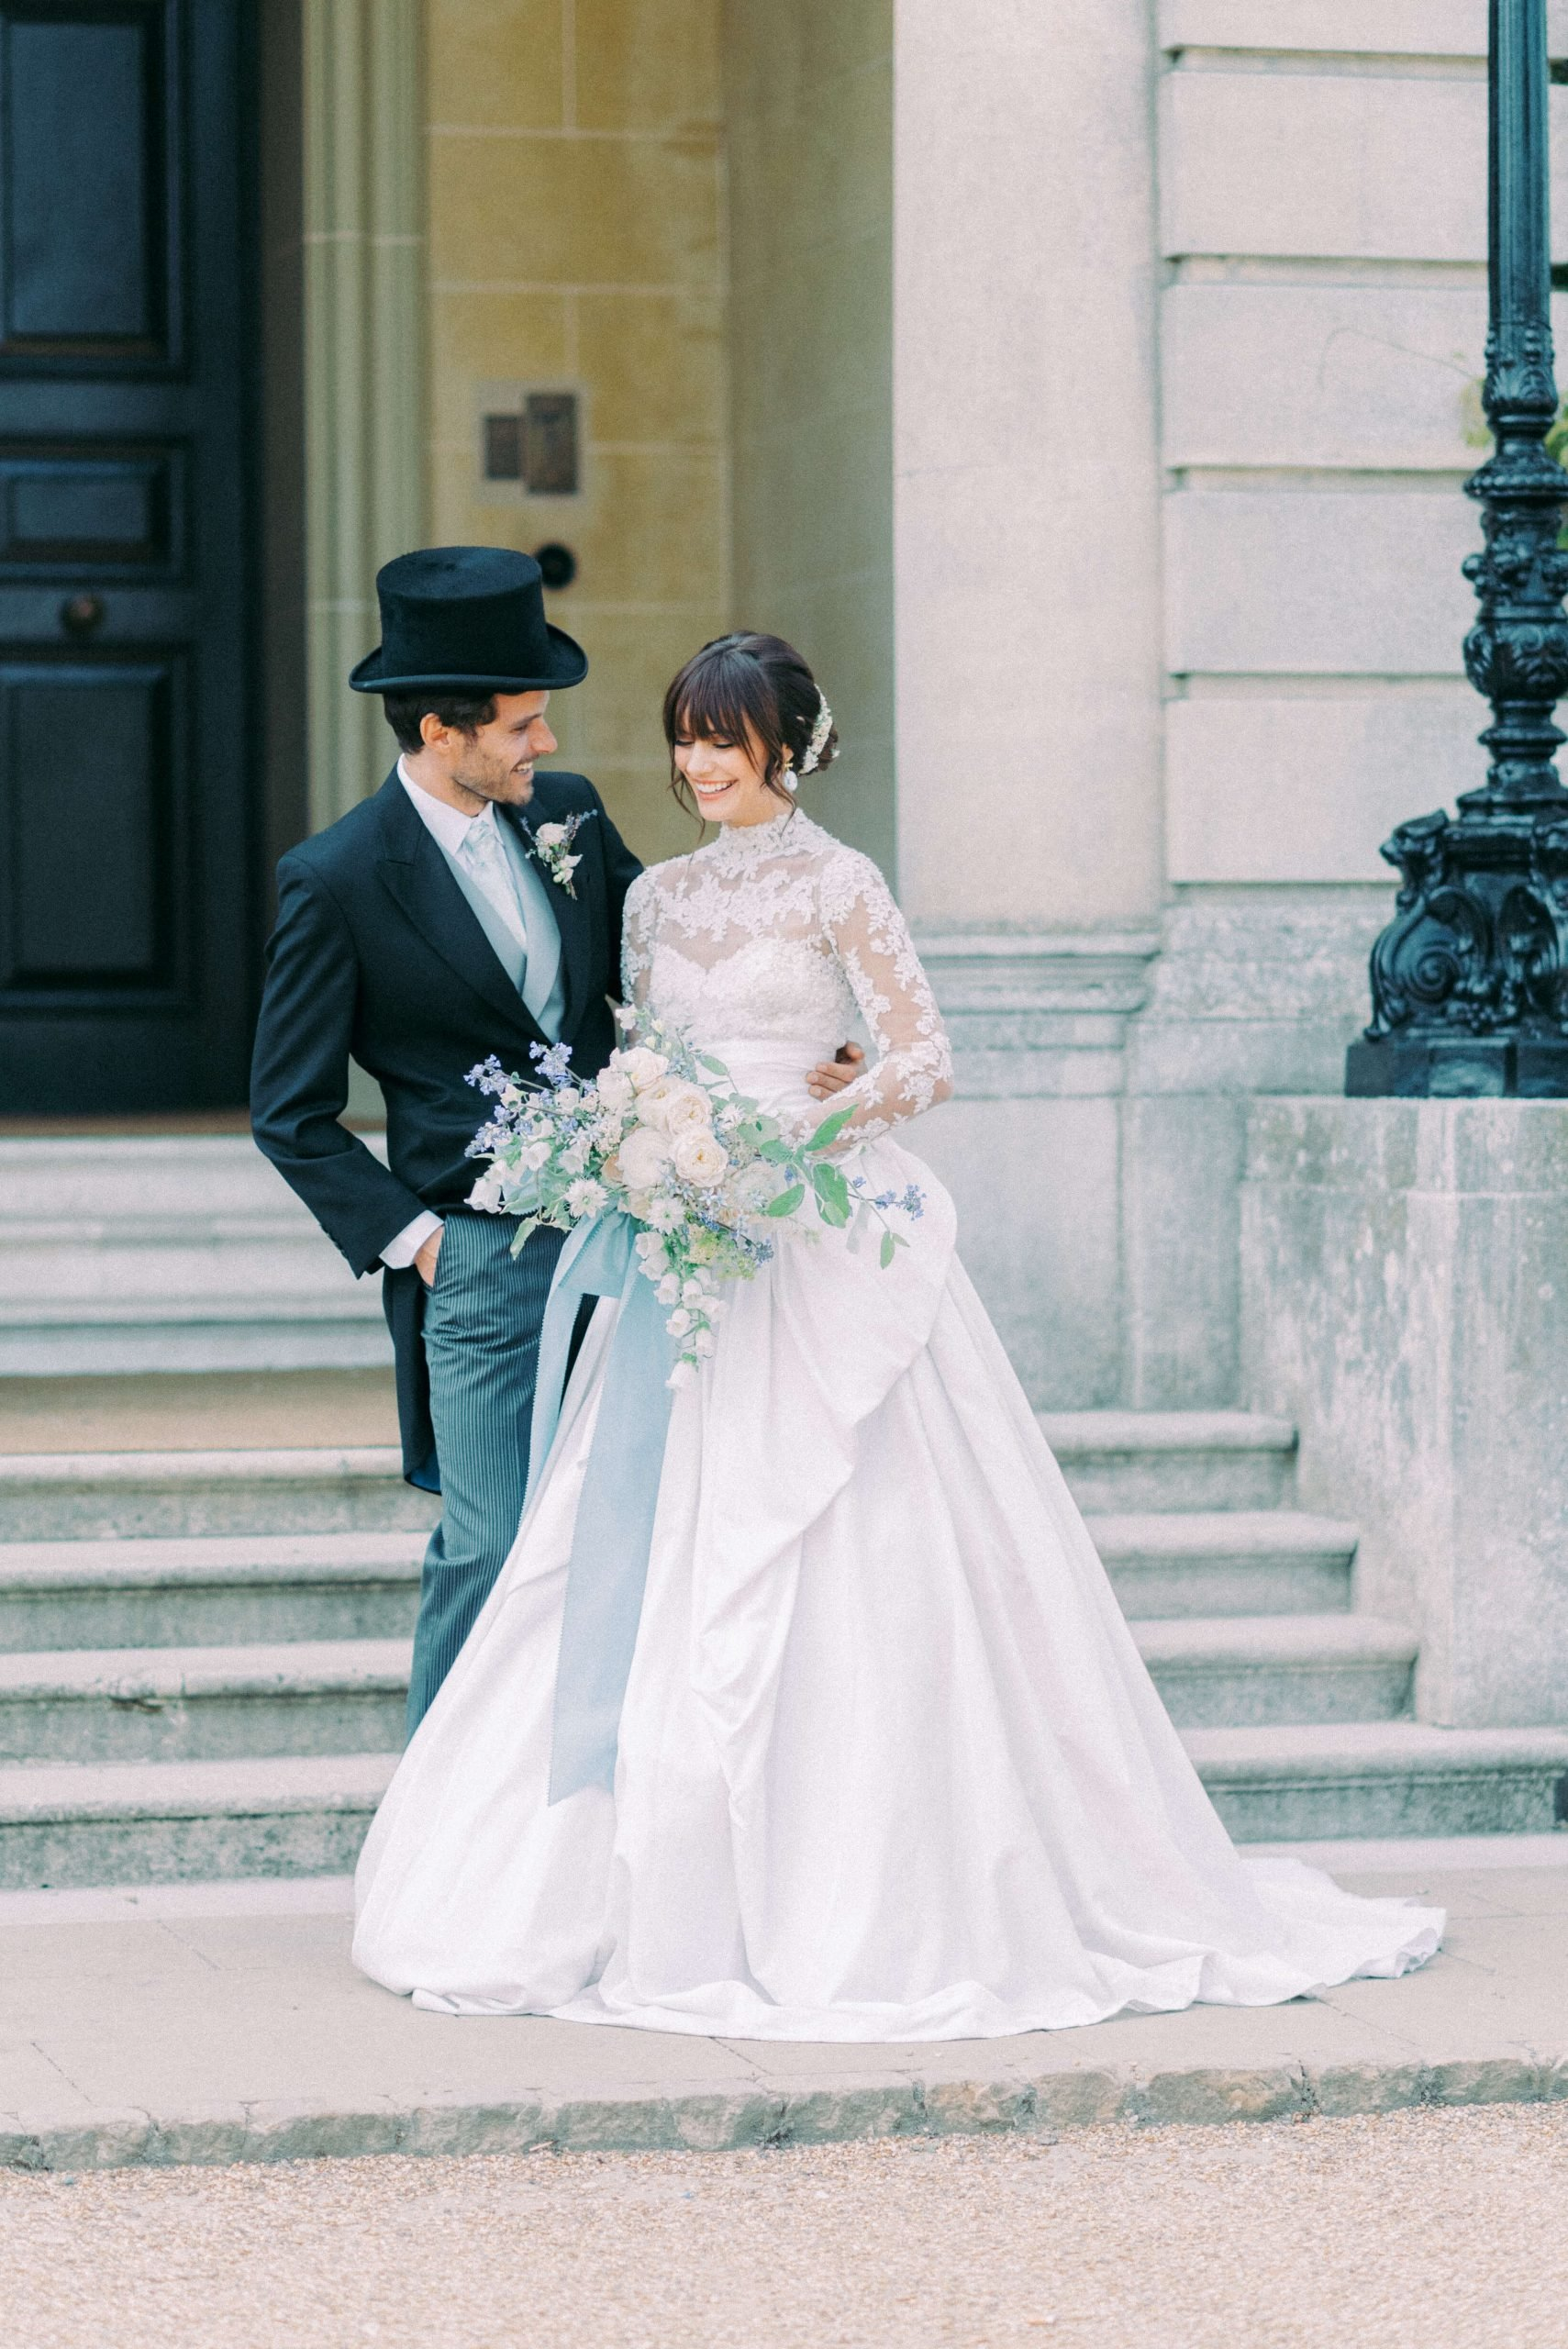 intimate wedding in the UK - bride wearing Marchesa high neck long sleeves a line lace wedding gown and groom wearing long black coat, top hat and pinstripe trousers at the front steps of Hedsor House wedding venue near London. Photo by Cristina Ilao www.cristinailao.com